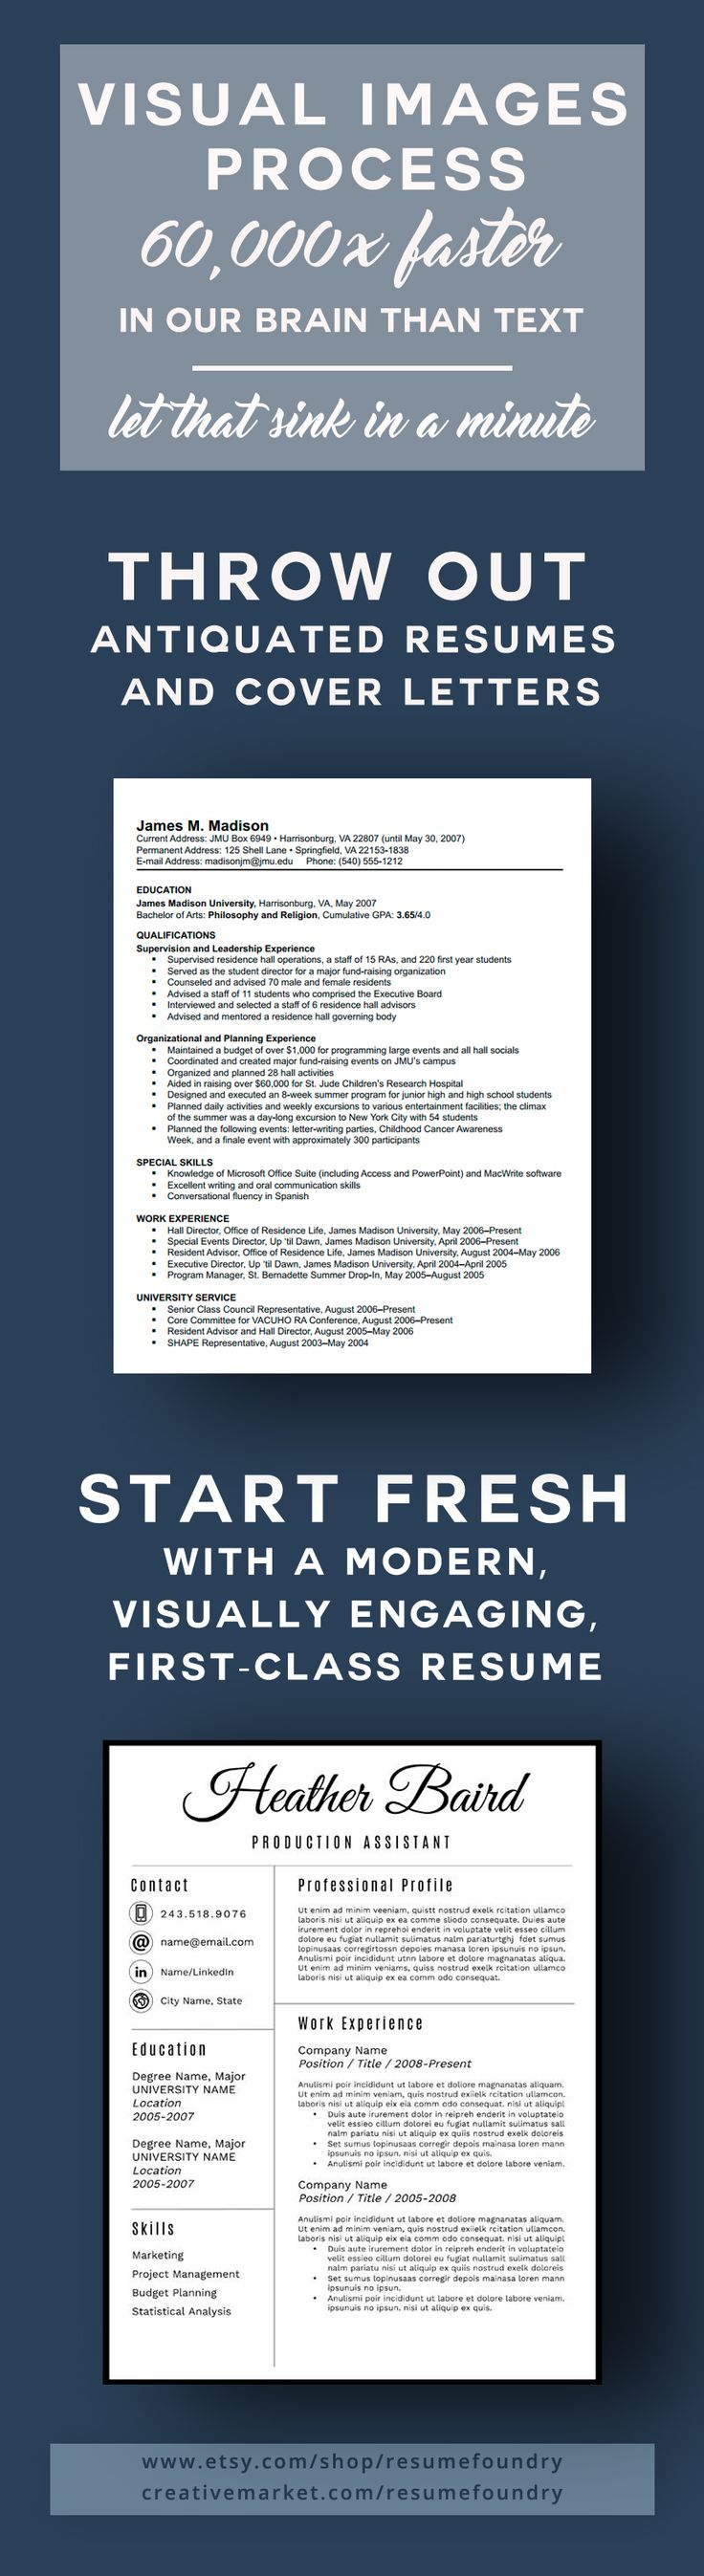 making resume format%0A Take advantage of the fact that visual images process faster than text   make your resume visually engaging